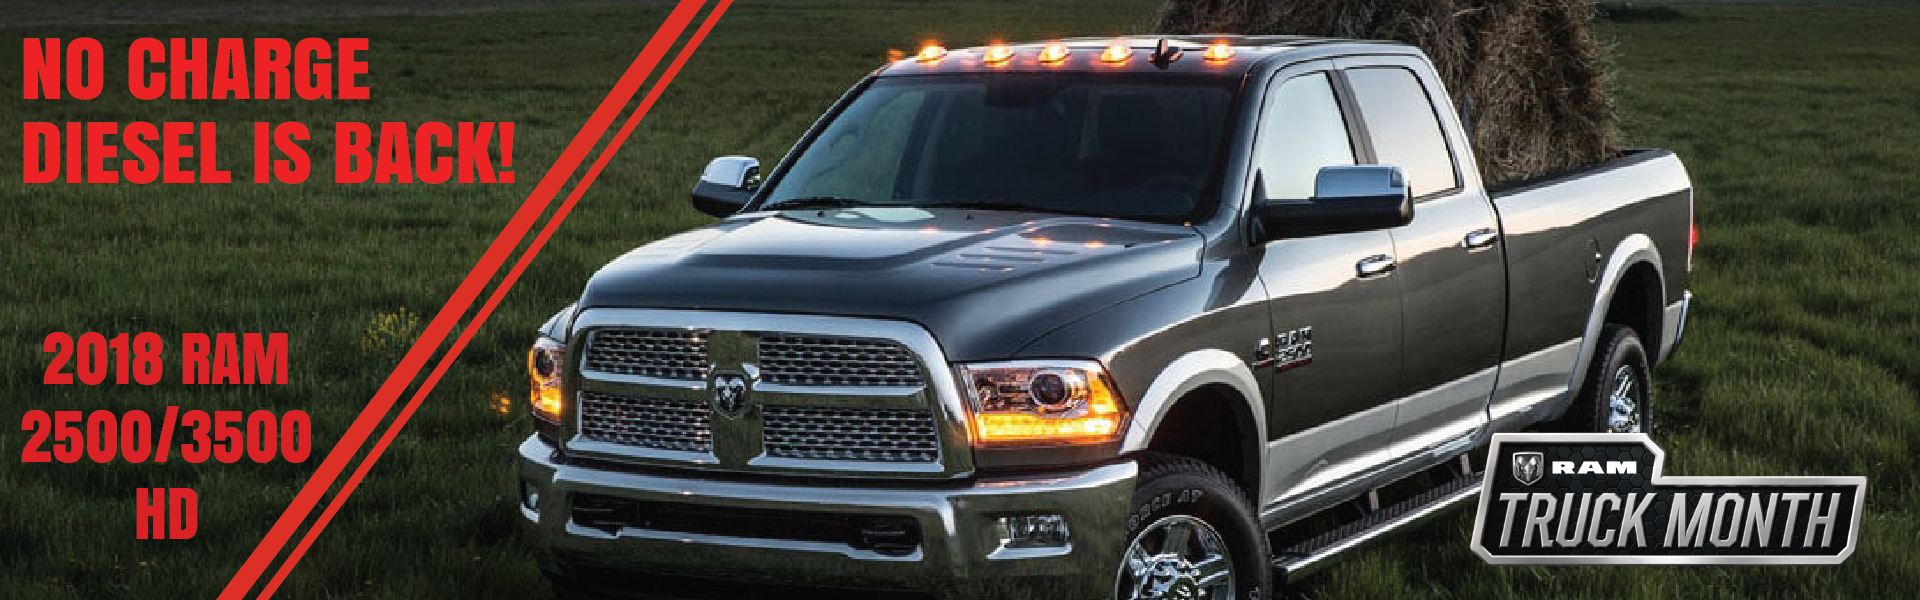 Chrysler Dodge Jeep Ram Dealer | Mainline Chrysler Rosetown, SK